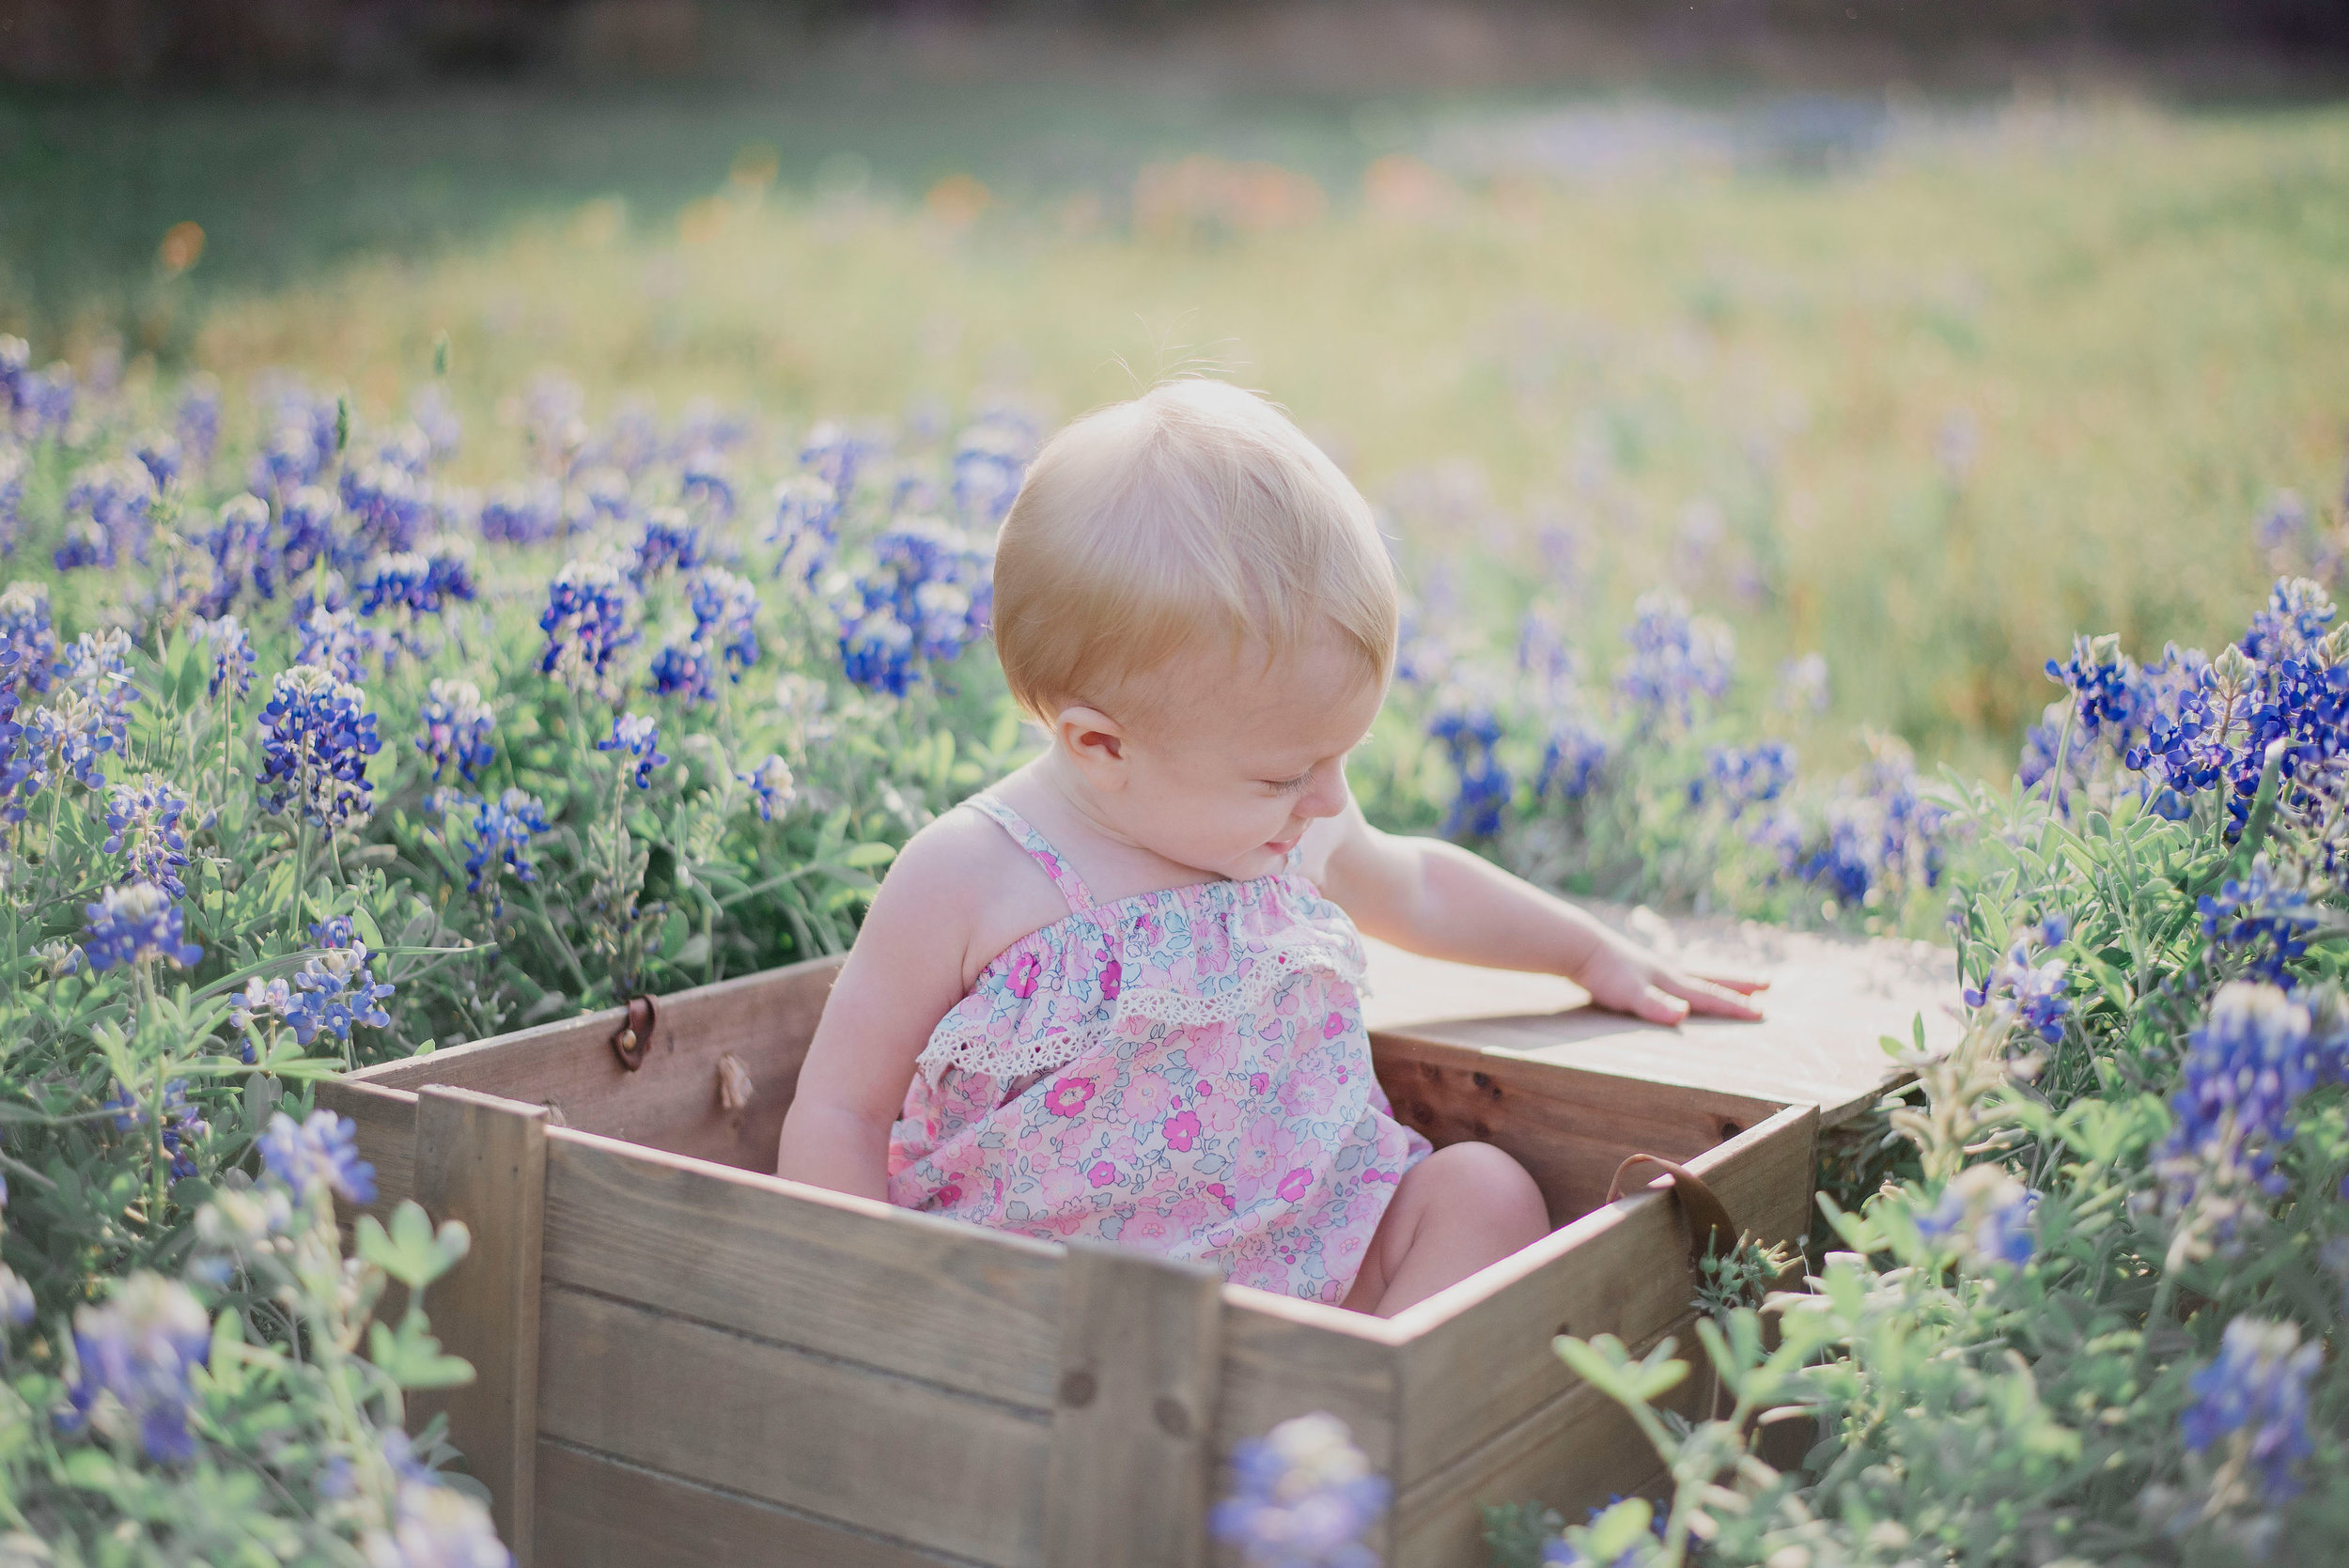 Austin Portrait Photographer First Birthday Session Texas Wildflowers Bluebonnets029.jpg